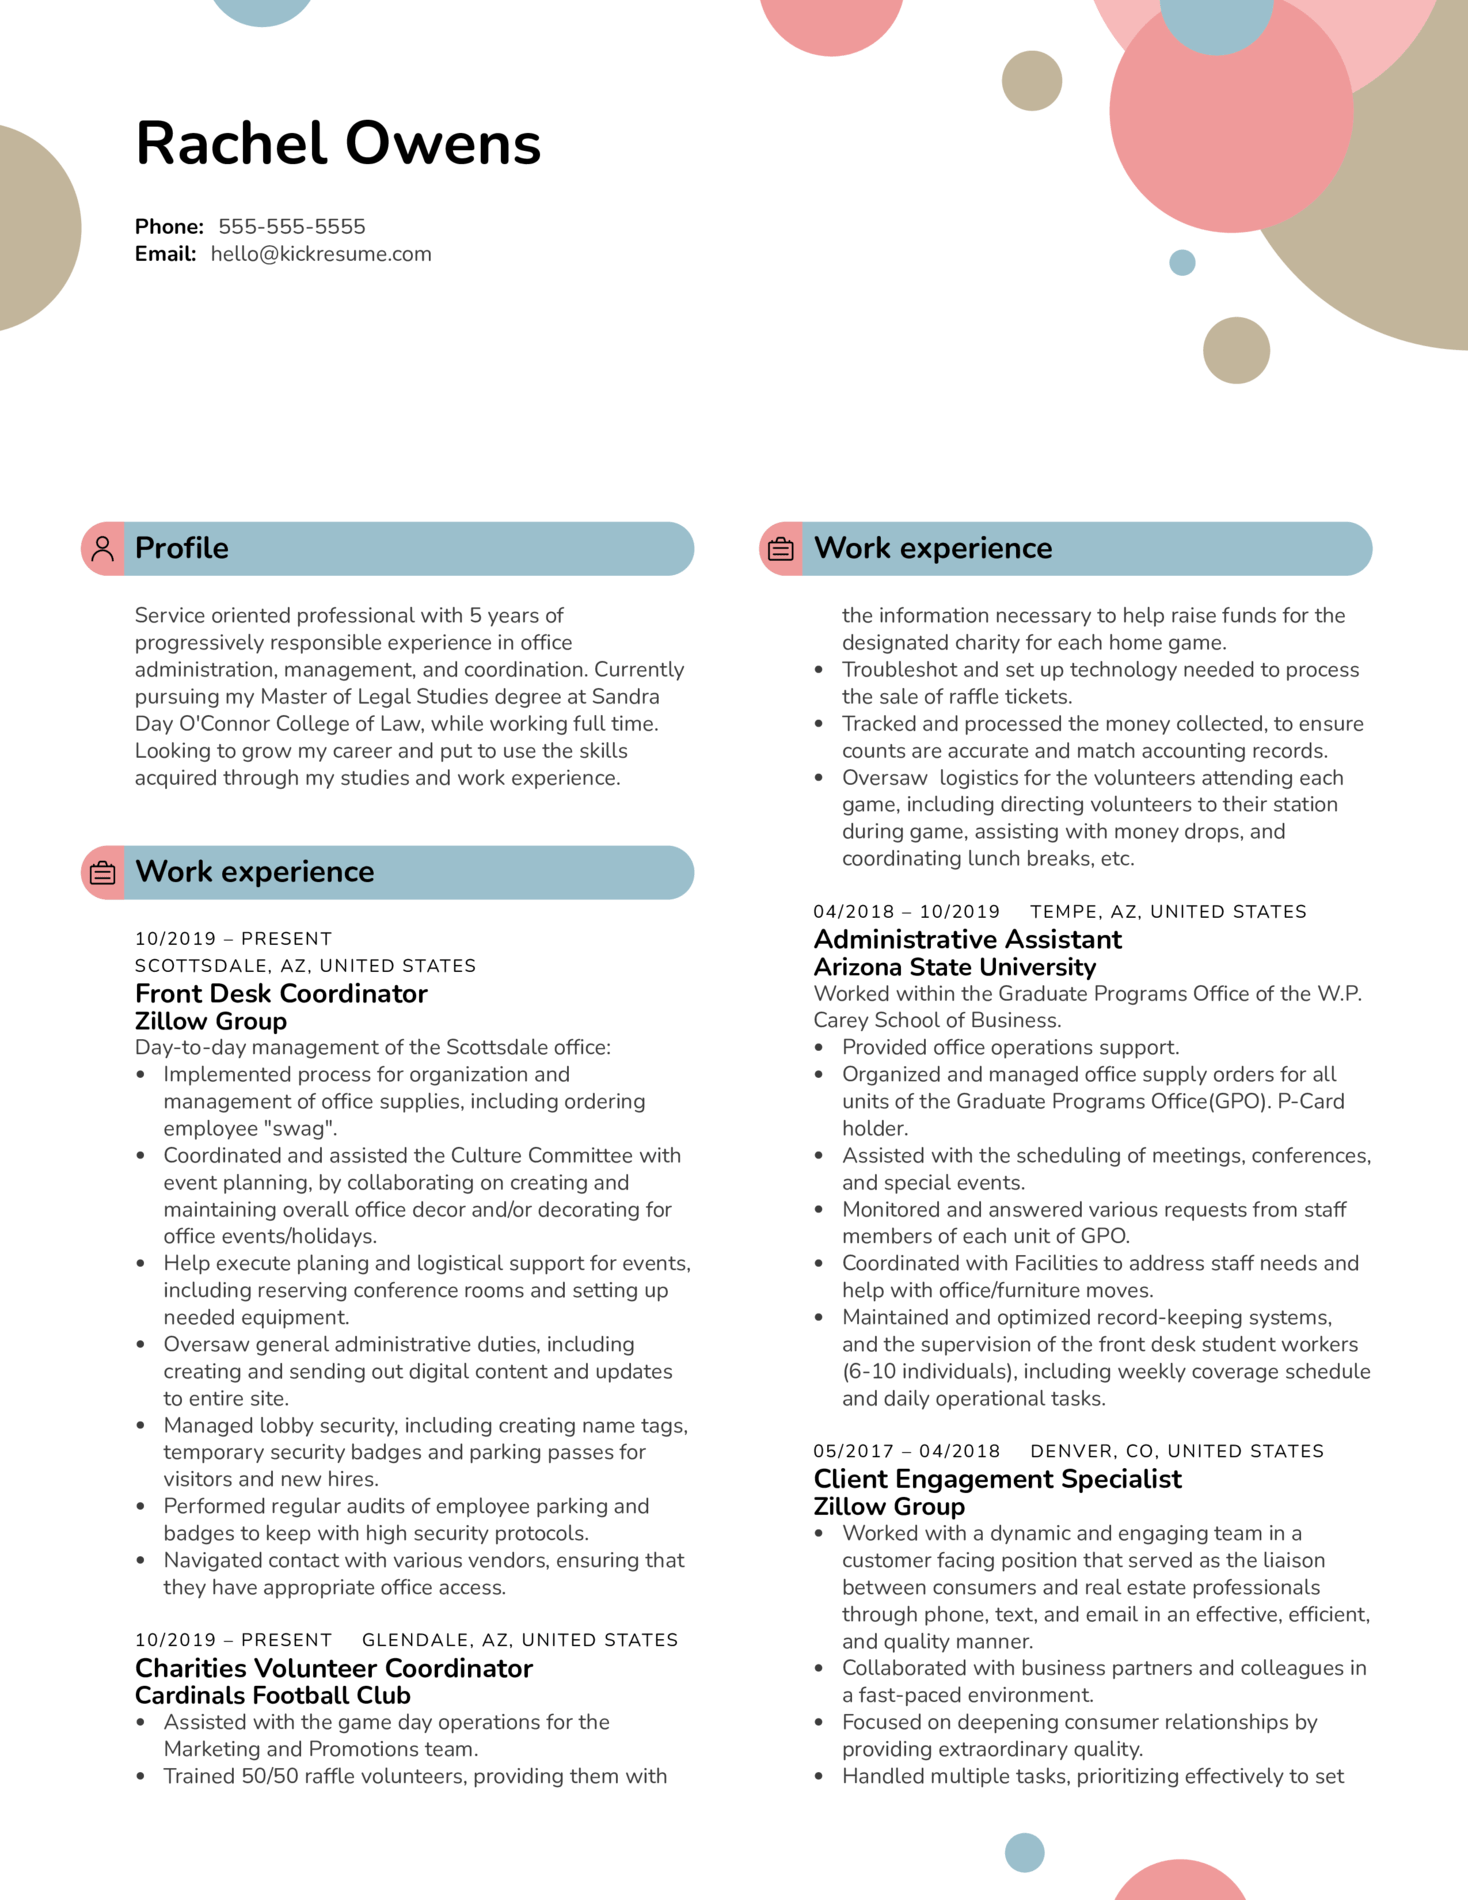 Front Desk Coordinator at Zillow Group Resume Sample